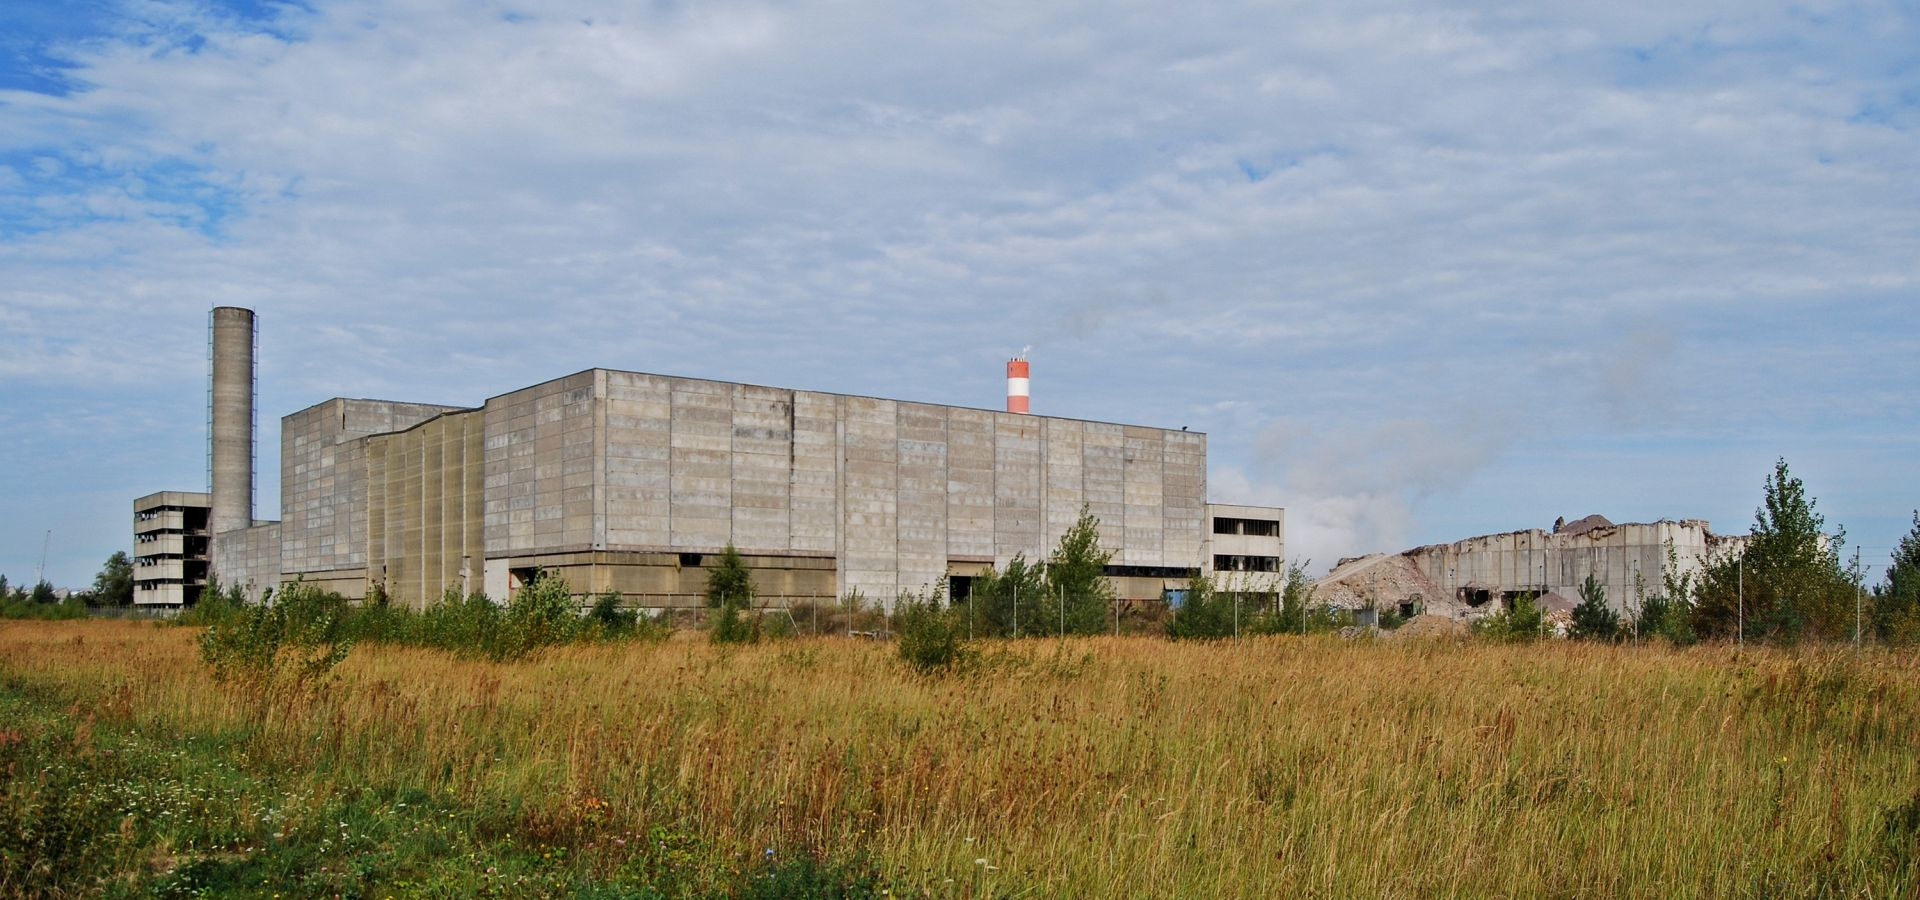 The remains of the abandoned Stendal Nuclear Power Plant near Arneburg, Saxony-Anhalt.